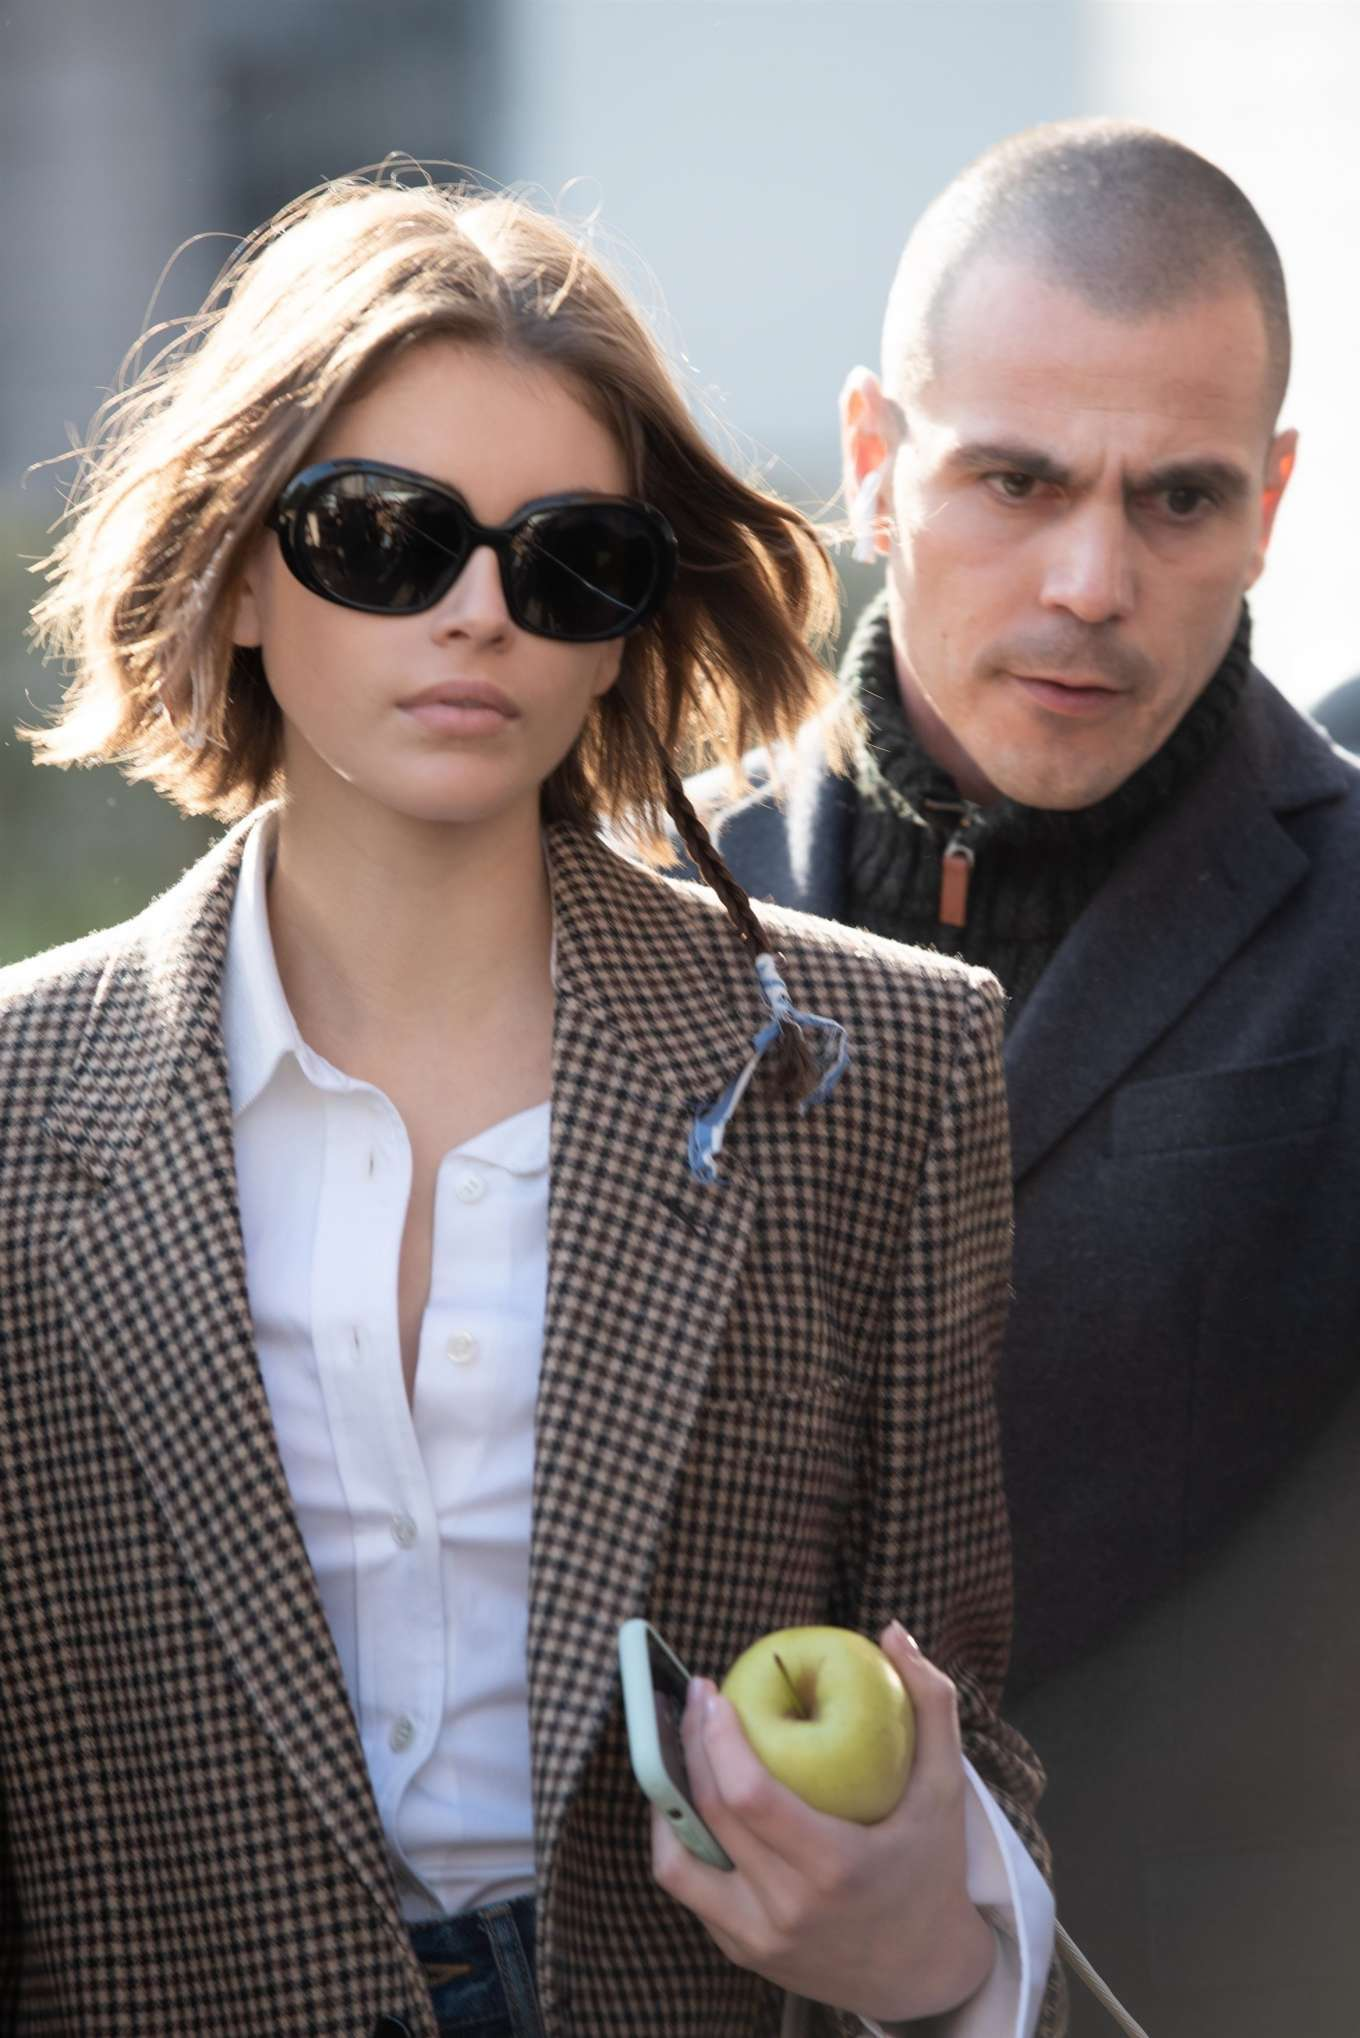 Kaia Gerber rocking a white tucked in shirt with full sleeves, shirt collar and button front